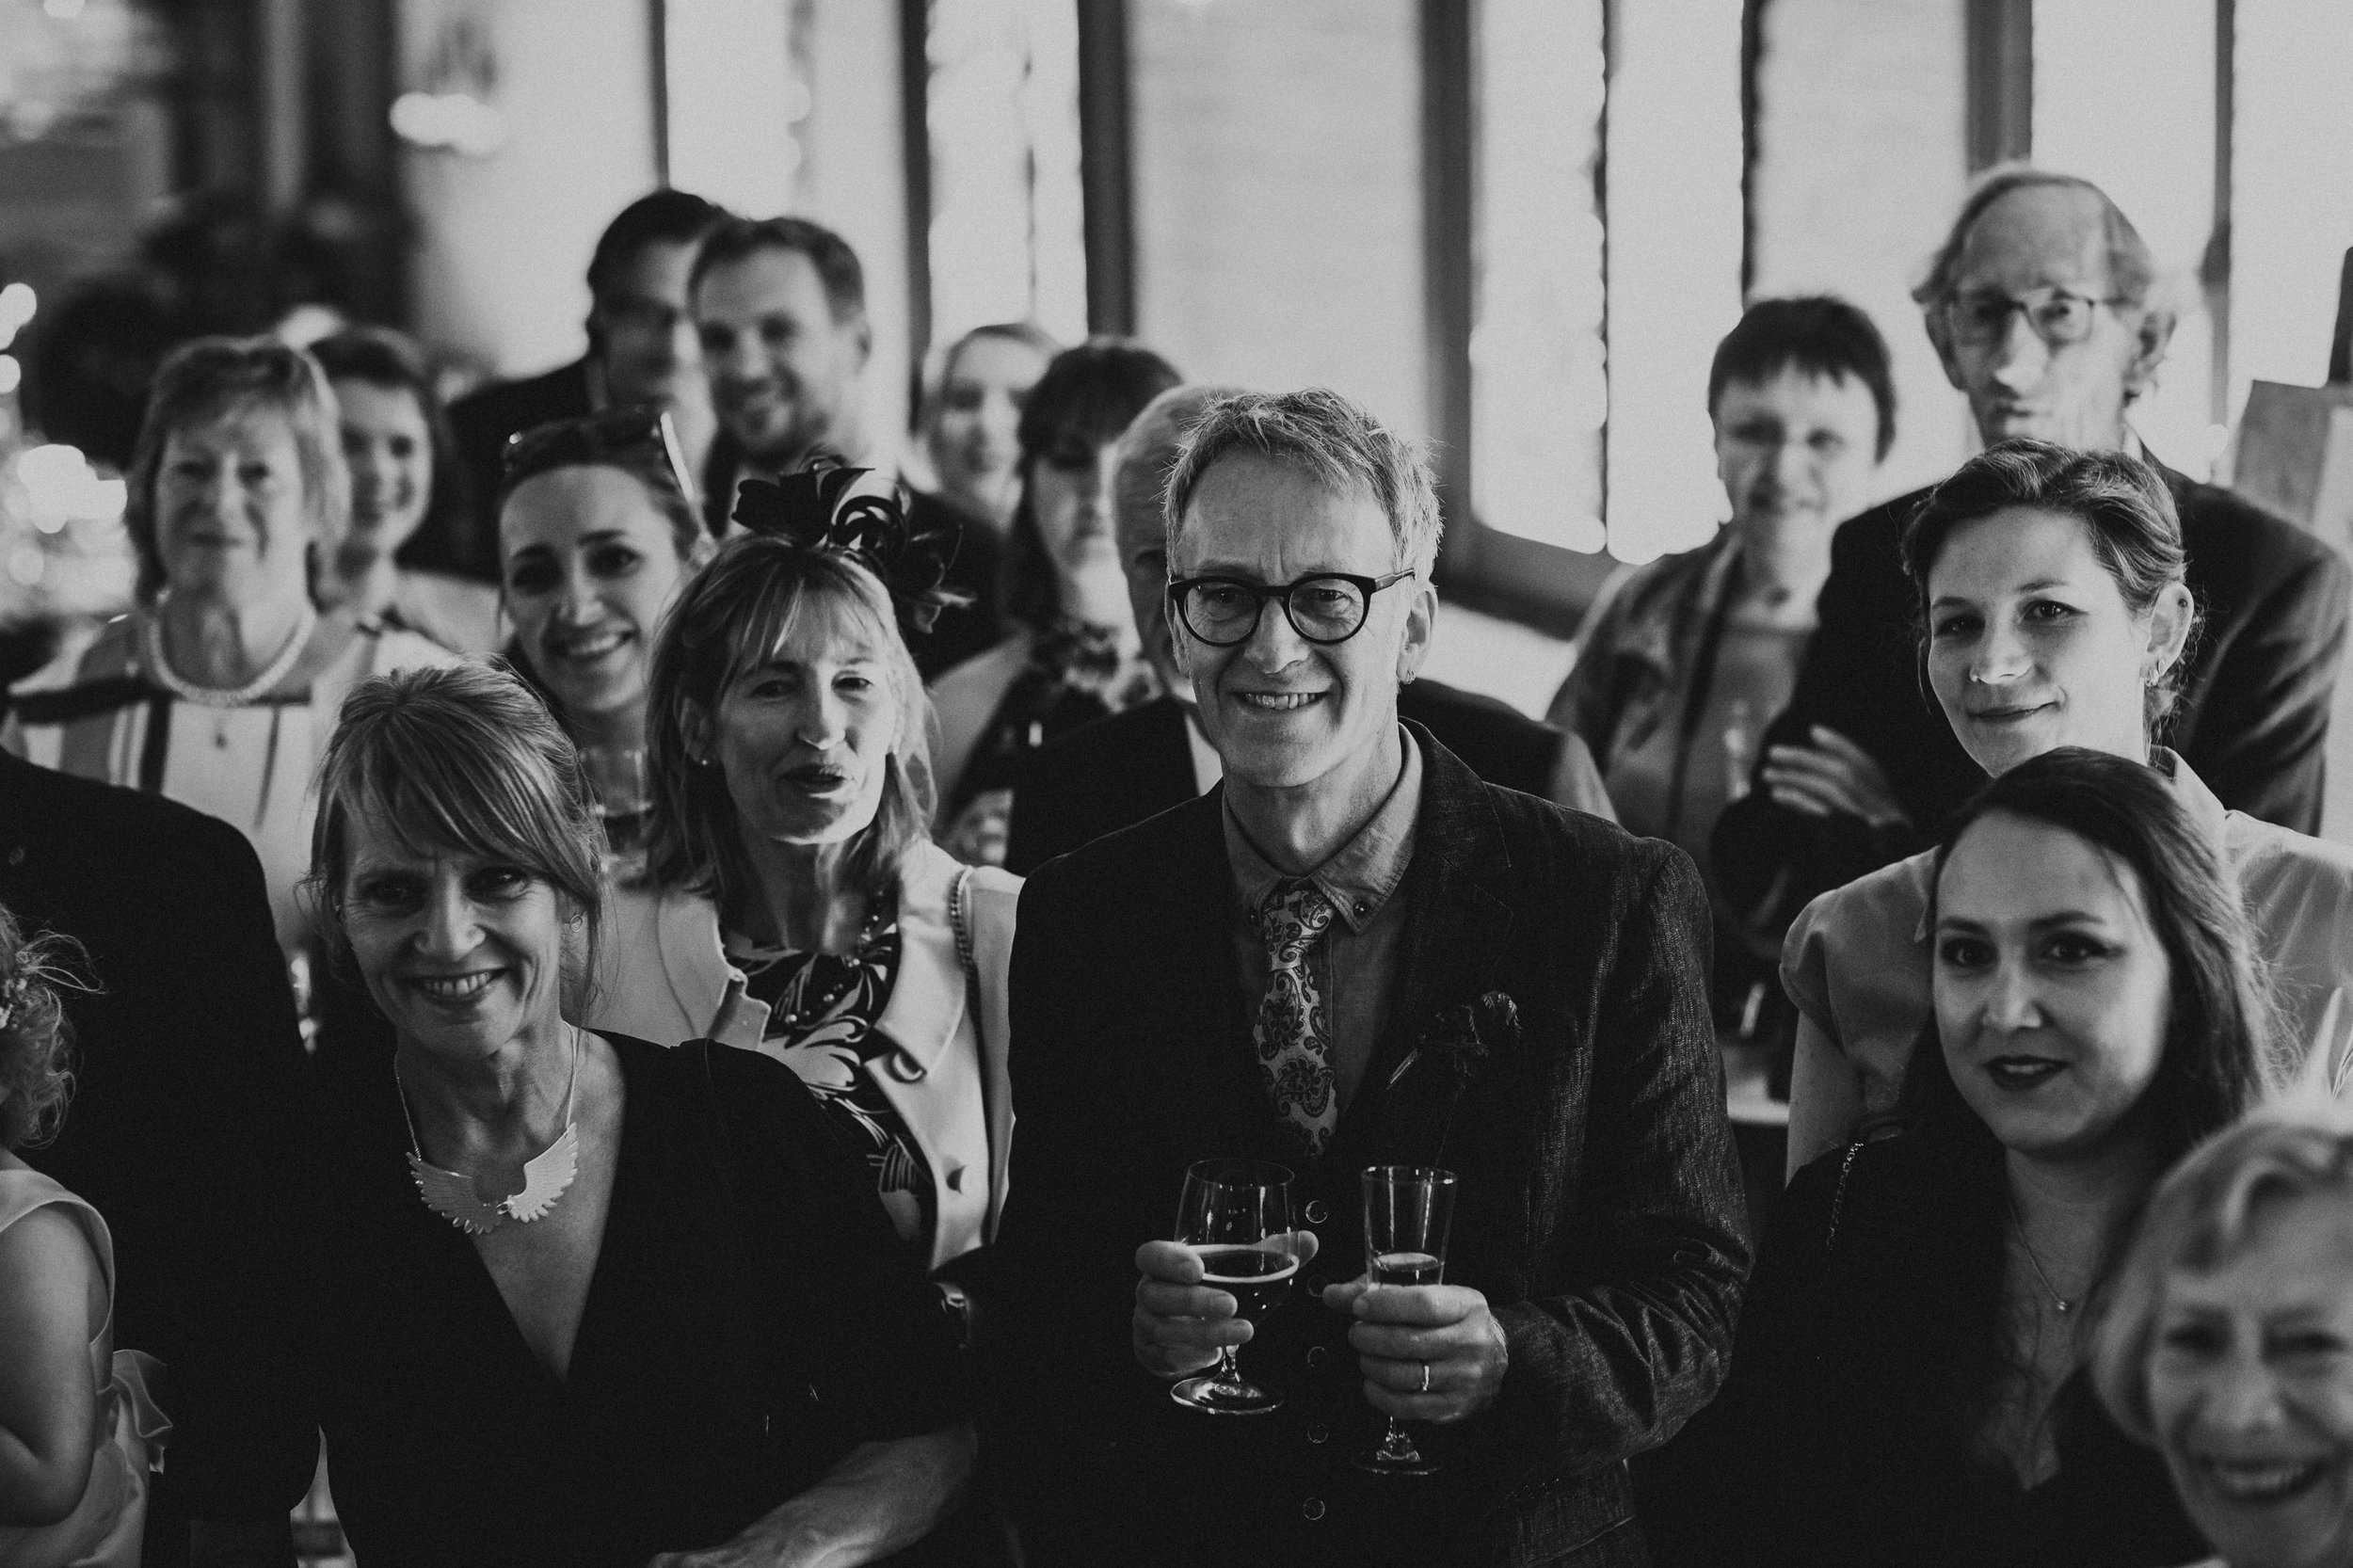 TIMBERYARD_EDINBURGH_WEDDING_PJ_PHILLIPS_PHOTOGRAPHY_148.jpg